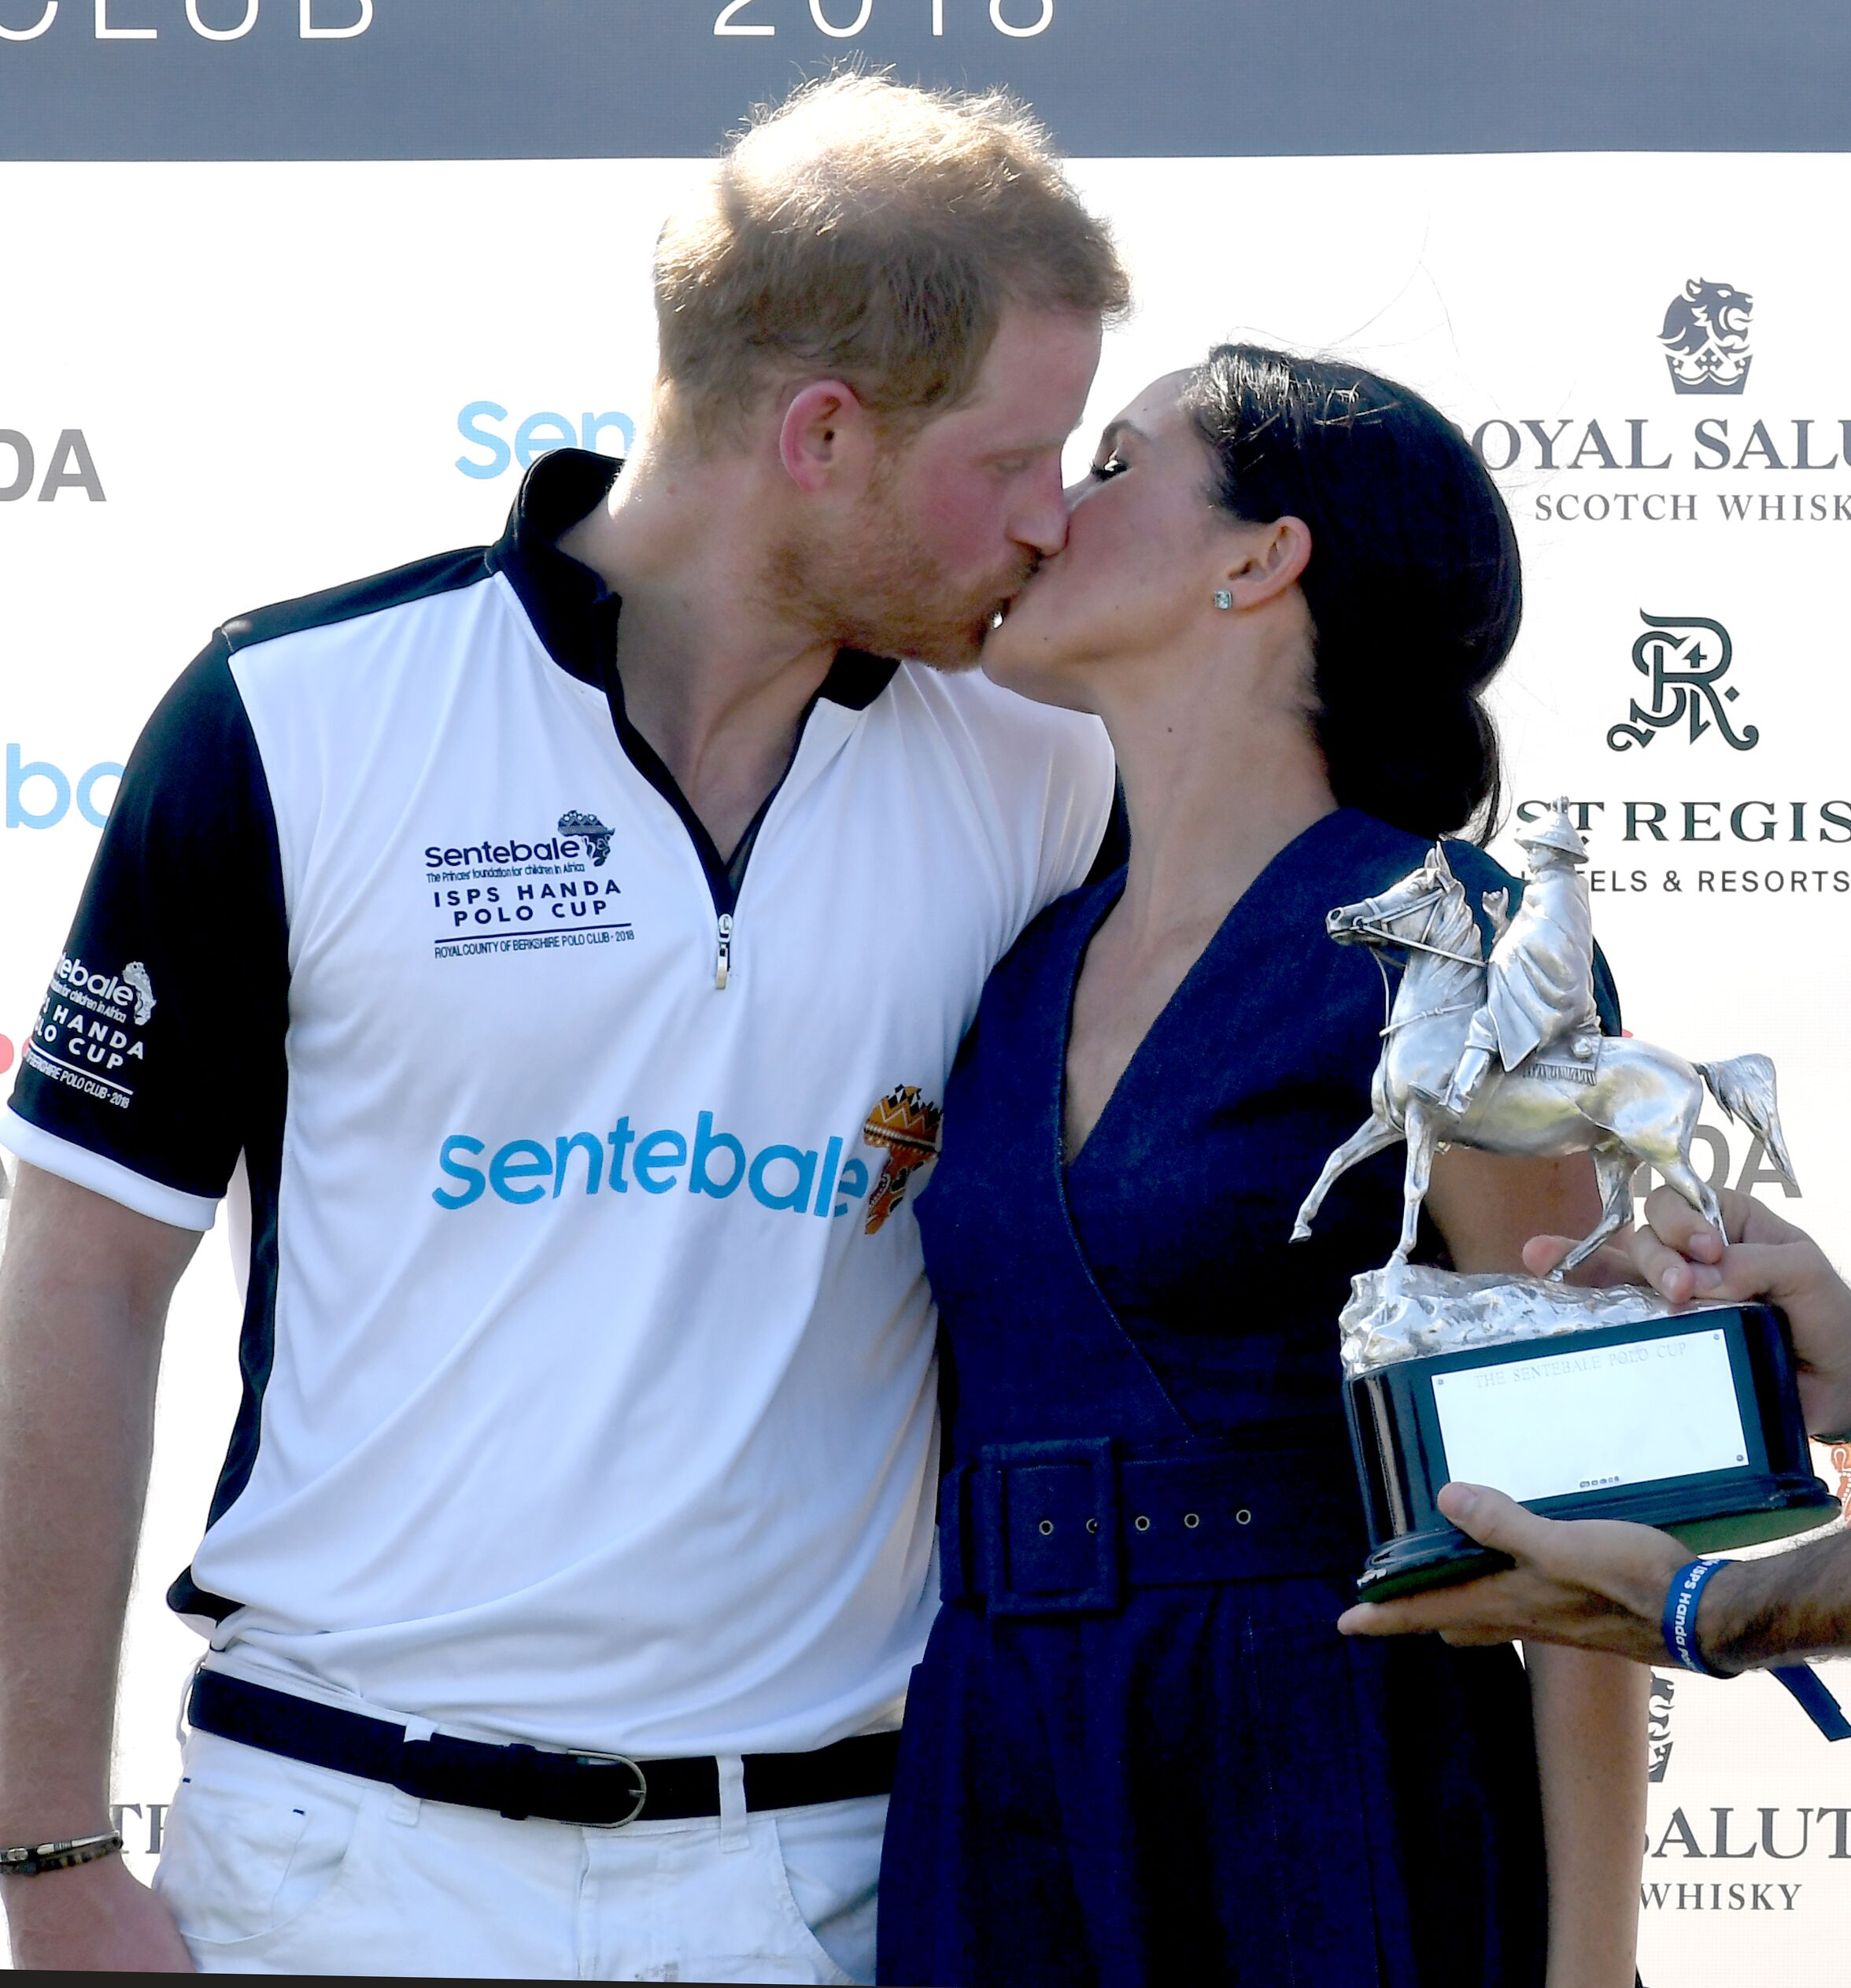 Prince Harry and Duchess Meghan kiss as they pose with the trophy after the Sentebale ISPS Handa Polo on July 26, 2018, in Windsor, England | Photo: Anwar Hussein/WireImage/Getty Images